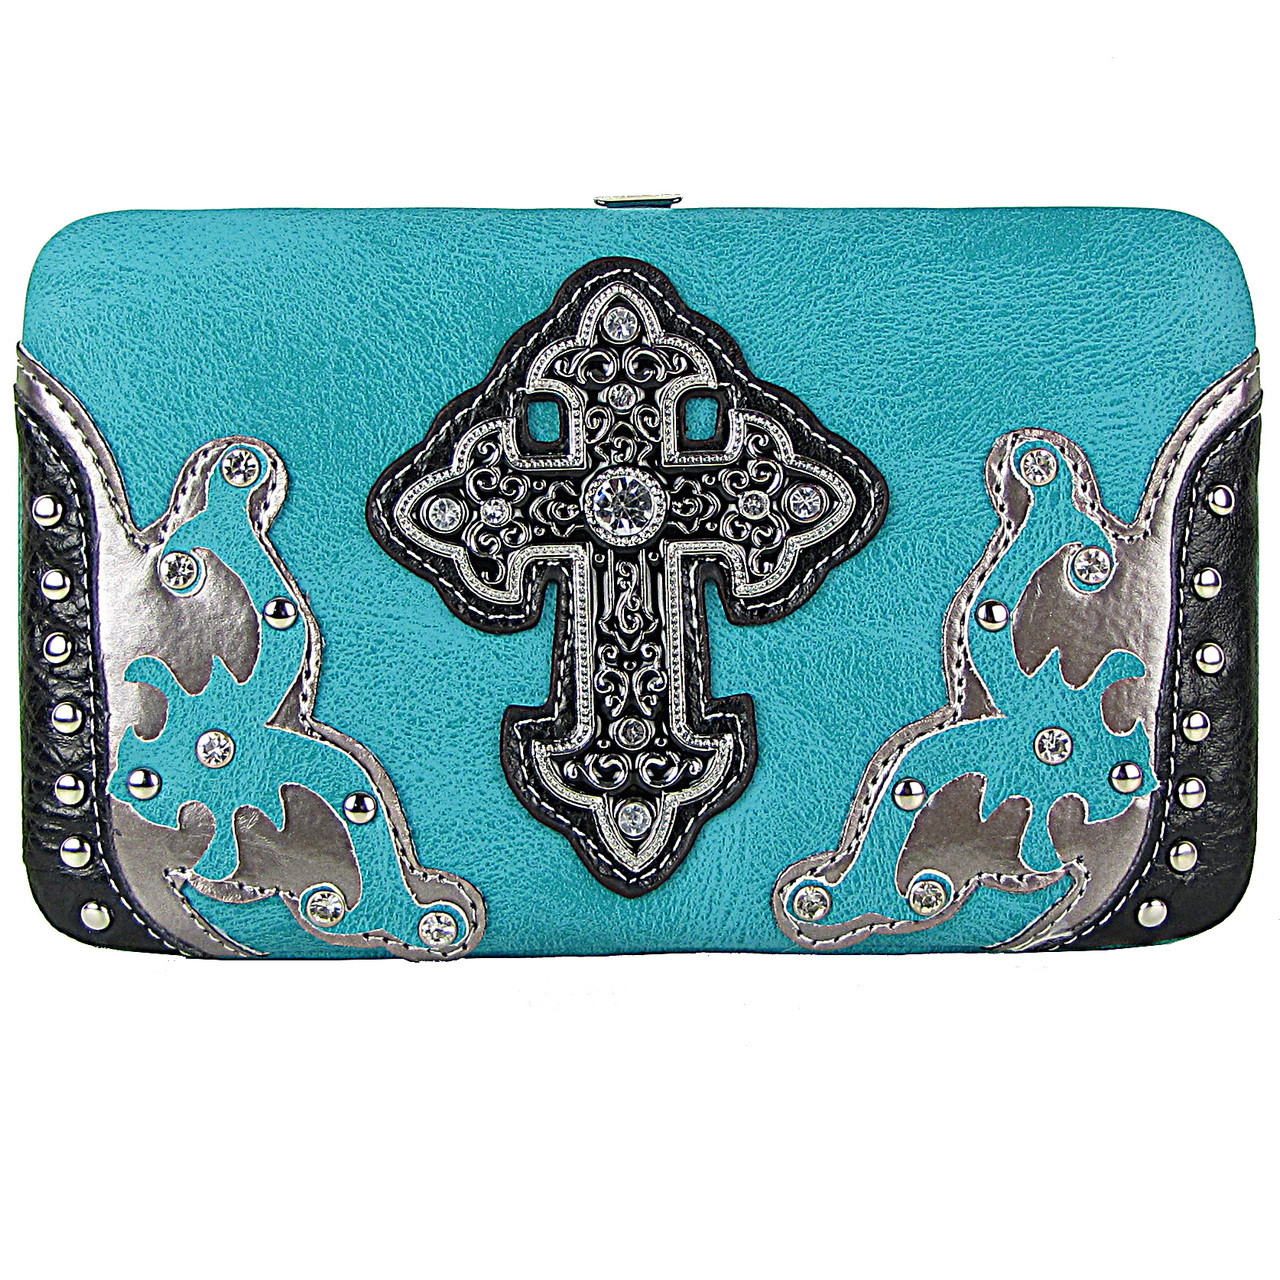 TURQUOISE STUDDED CROSS WESTERN DESIGN LOOK FLAT THICK WALLET FW2-0458TRQ